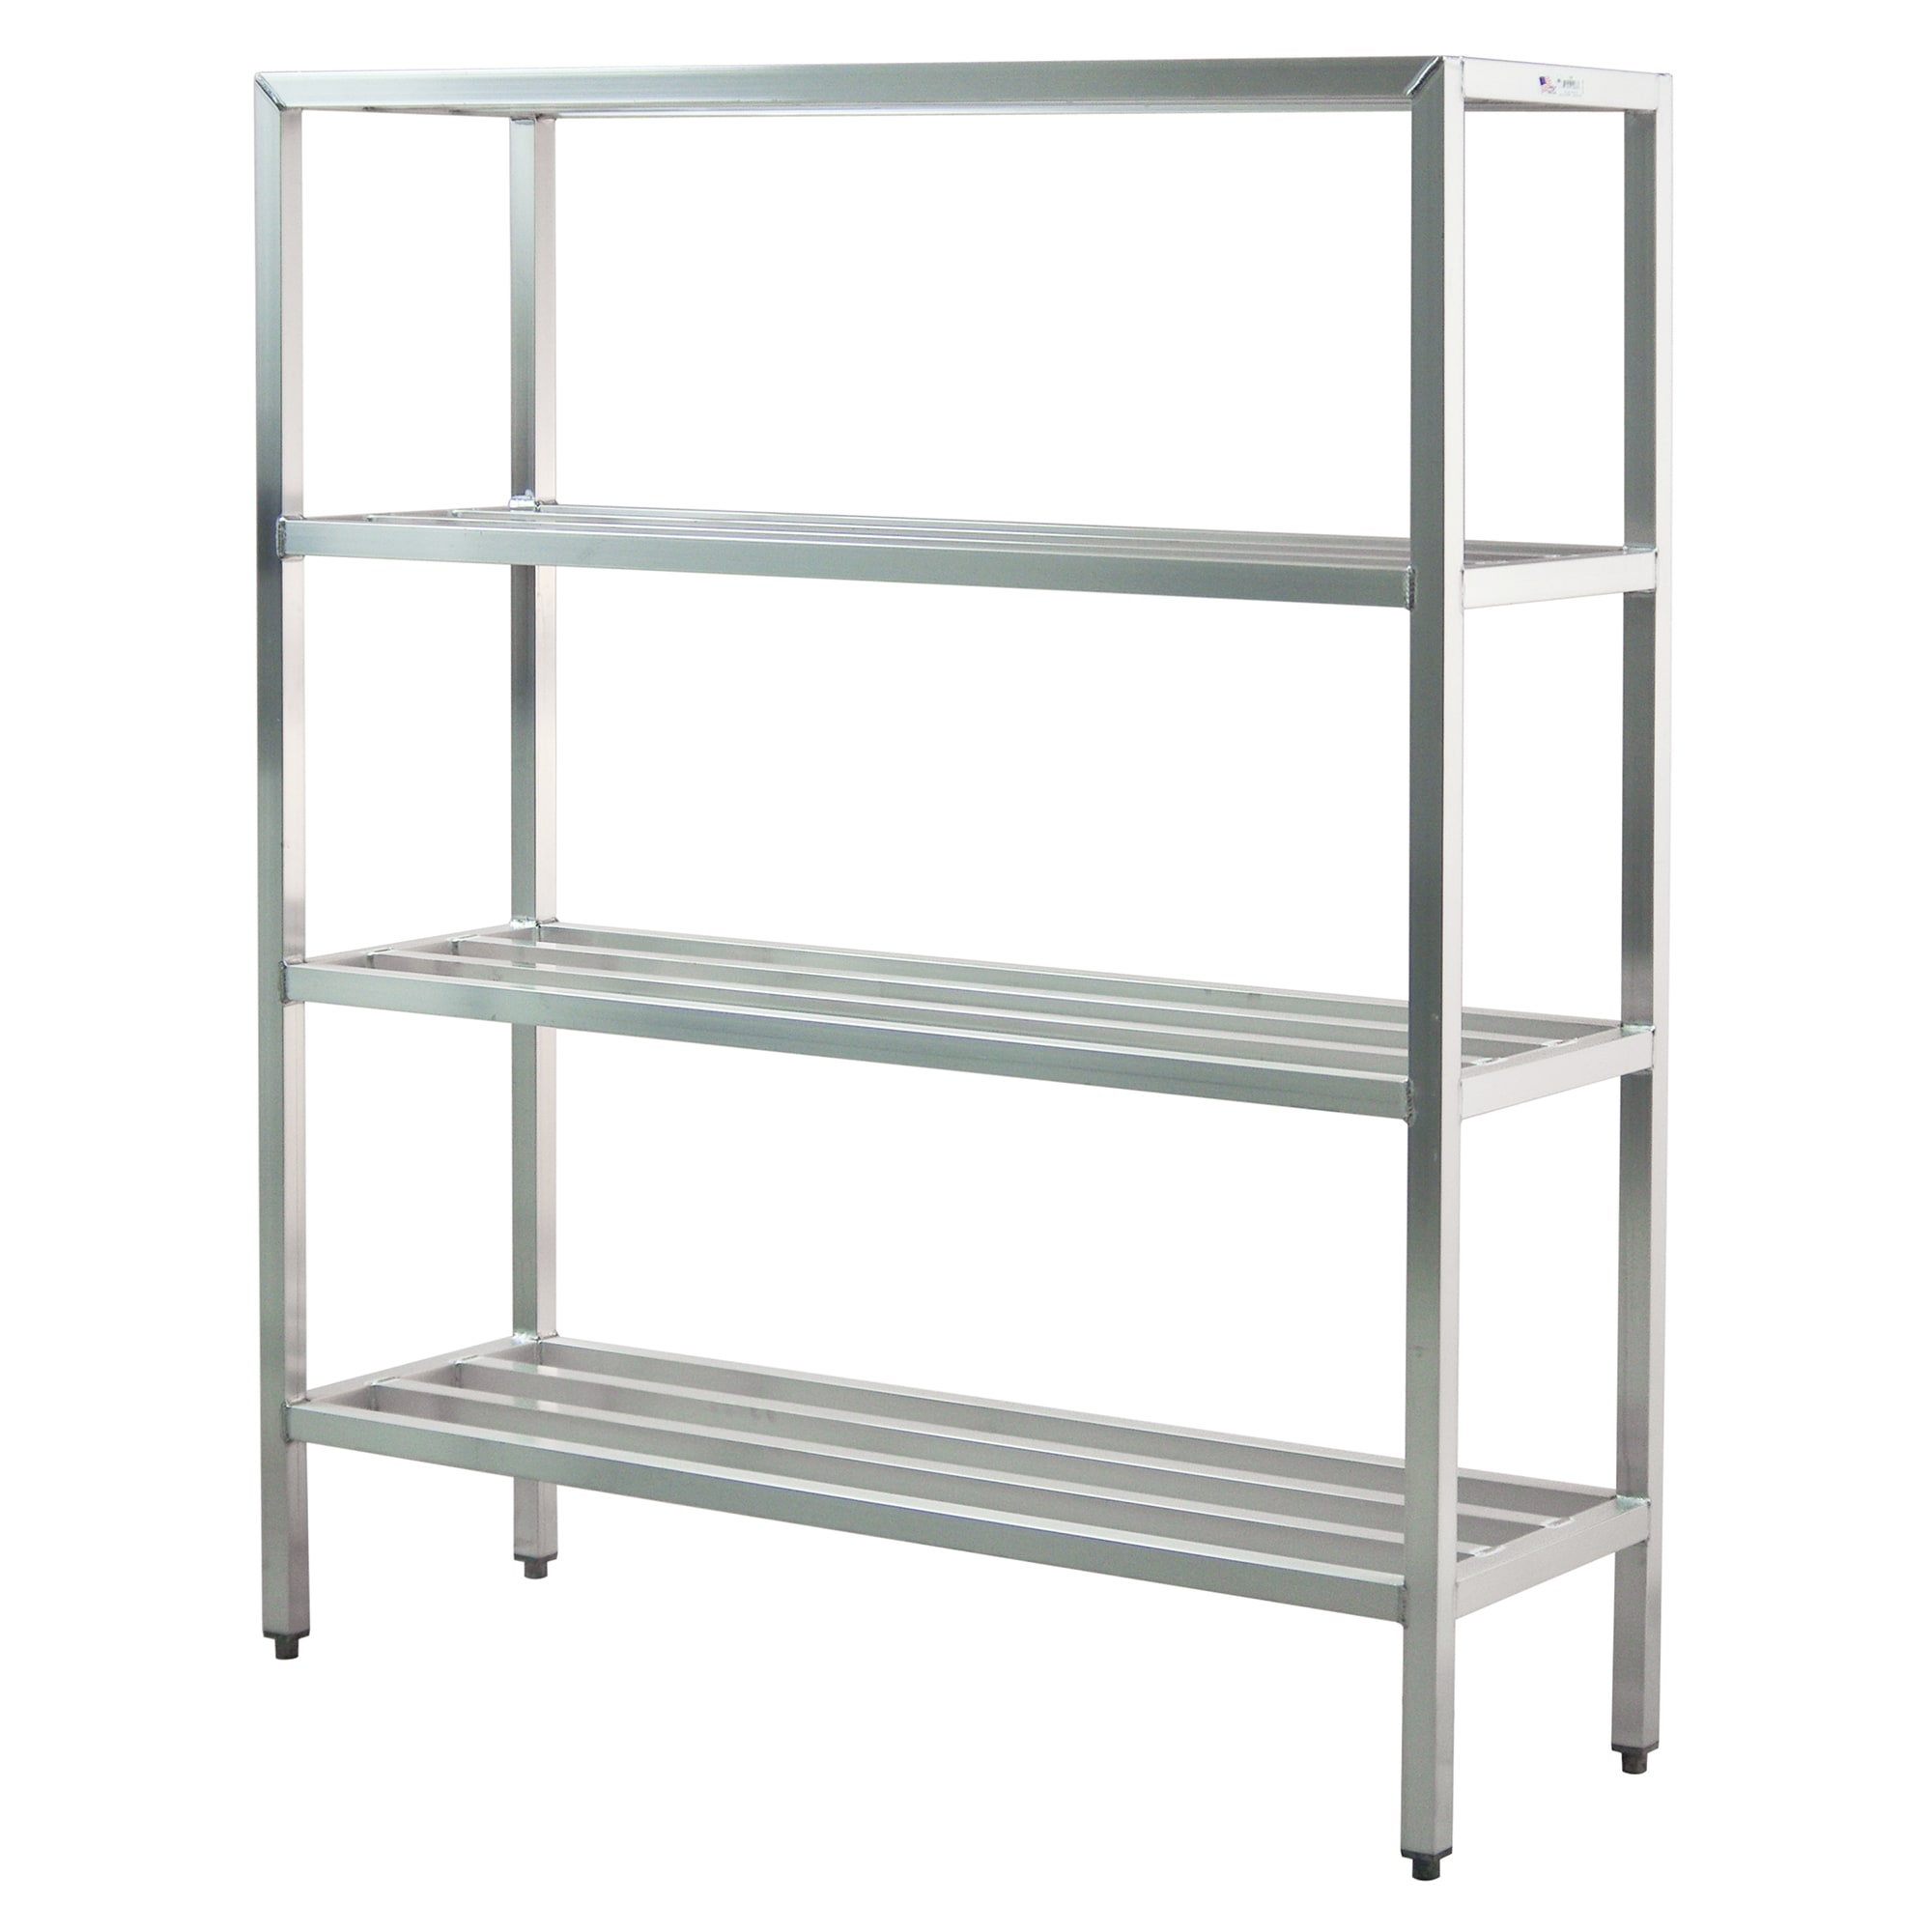 "New Age 1063 60"" Heavy-duty Shelving Unit w/ 1500 lb Capacity, Aluminum"